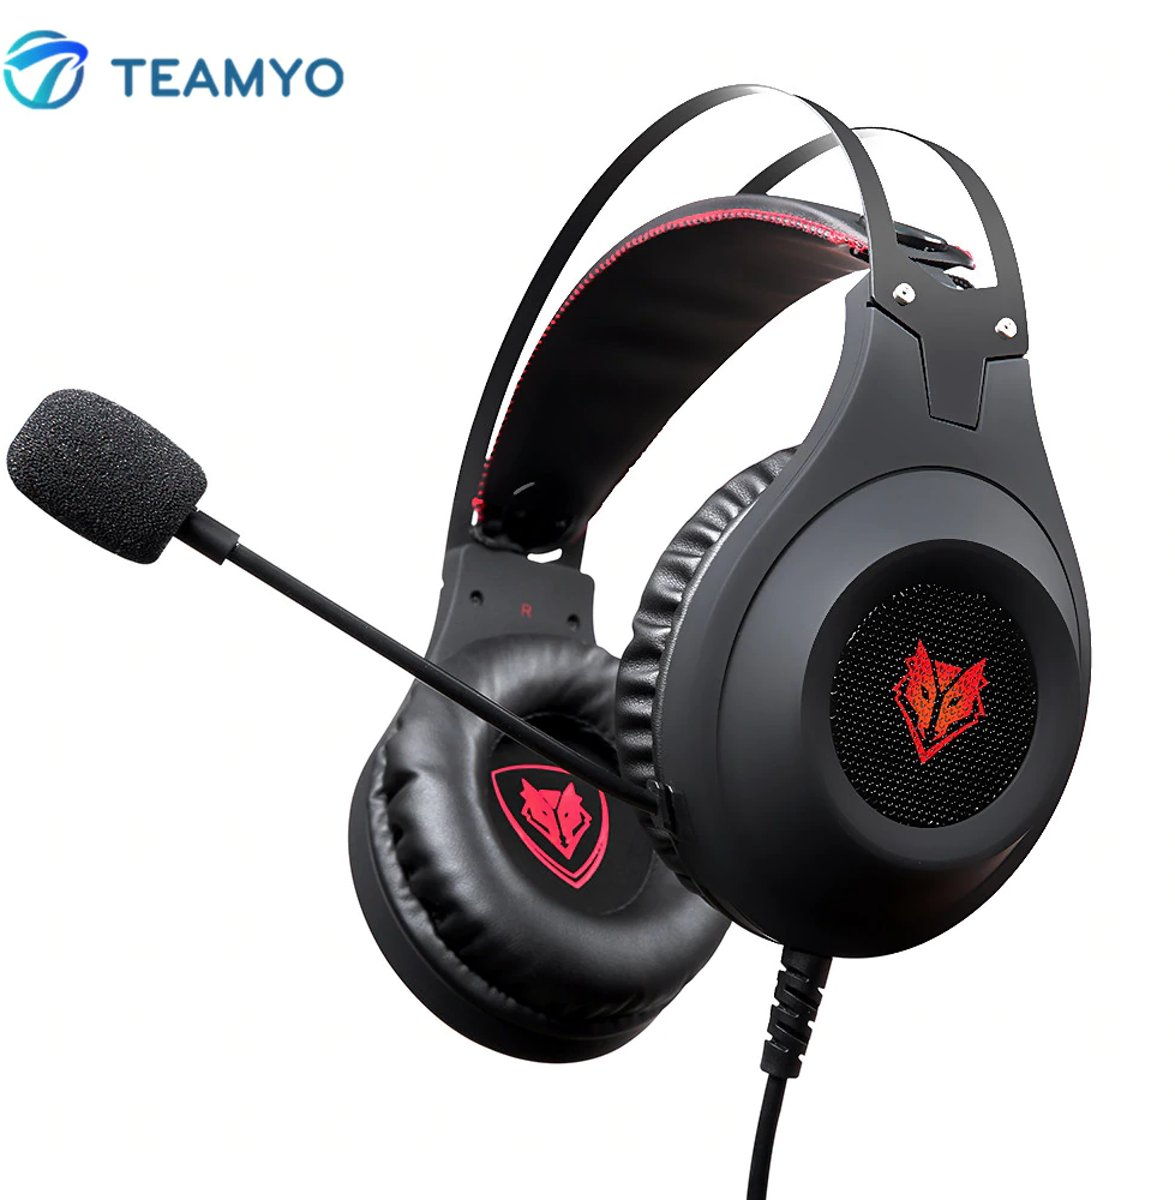 Gaming Headset- Headphone PC/ Playstation/ Xbox- Hoge kwaliteit en extra flexibel- LED verlichting